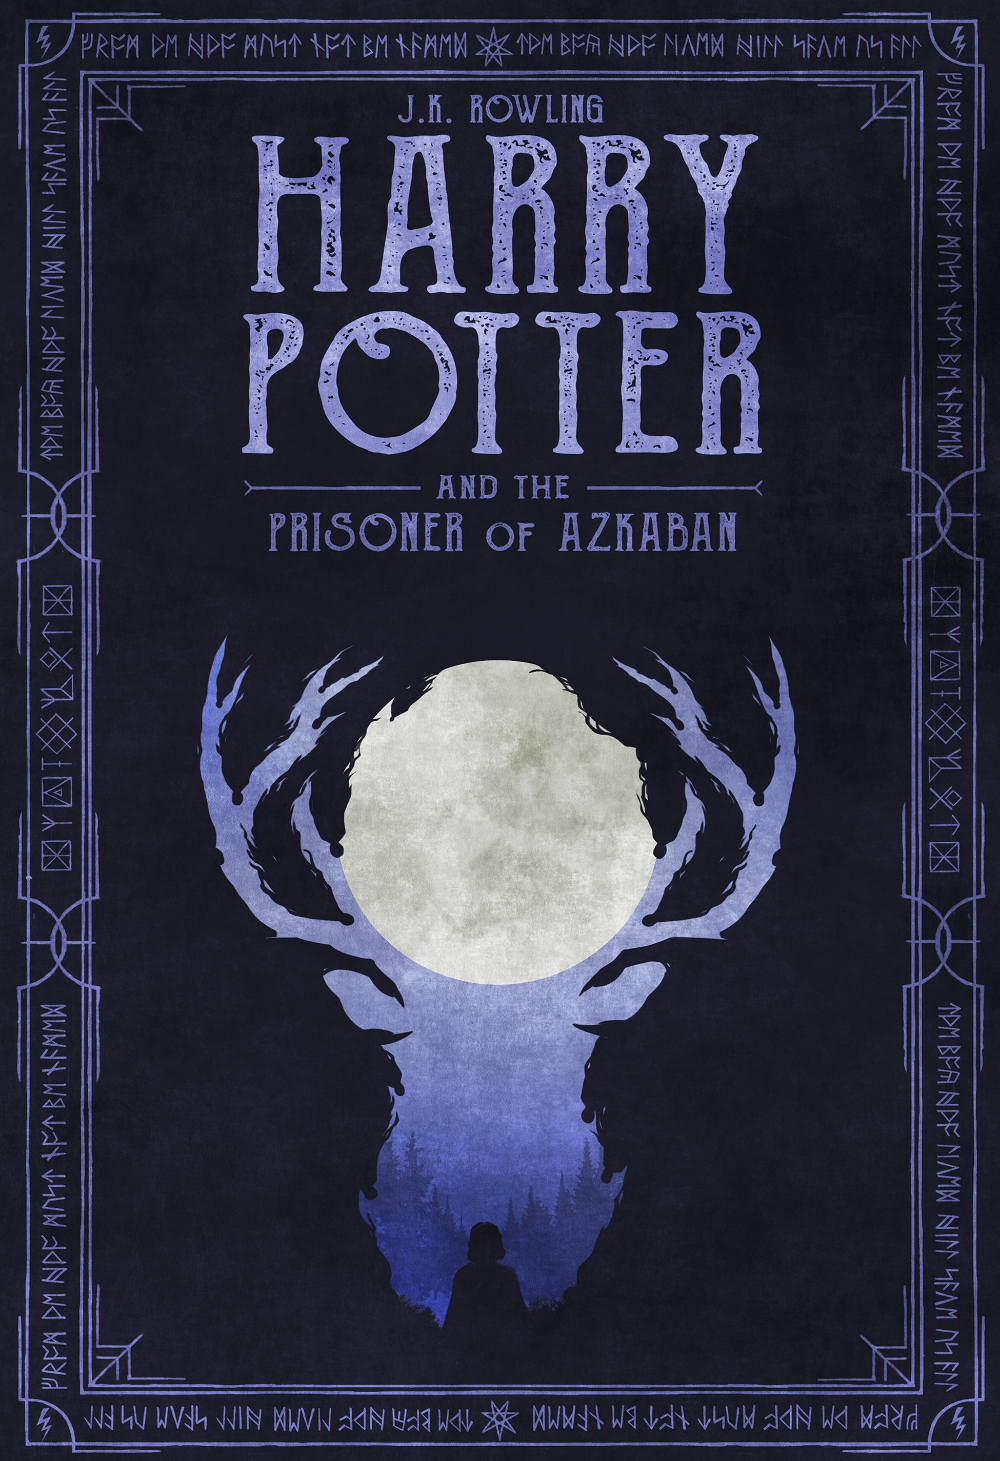 Harry Potter And The Prisoner Of Azkaban Chris Ables Original Harry Potter Book Jackets In 2020 Harry Potter Book Covers Harry Potter Poster Harry Potter Book 3